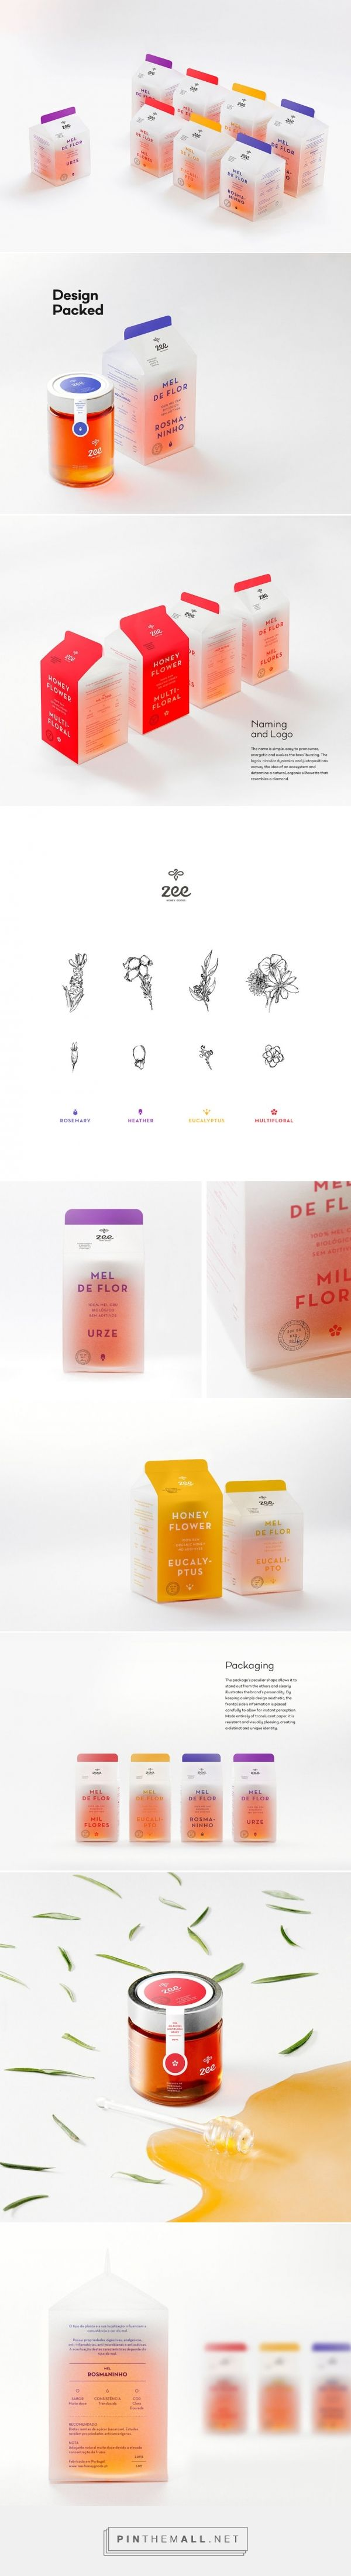 Zee Honey Goods packaging design by gen design studio (Portugal)…